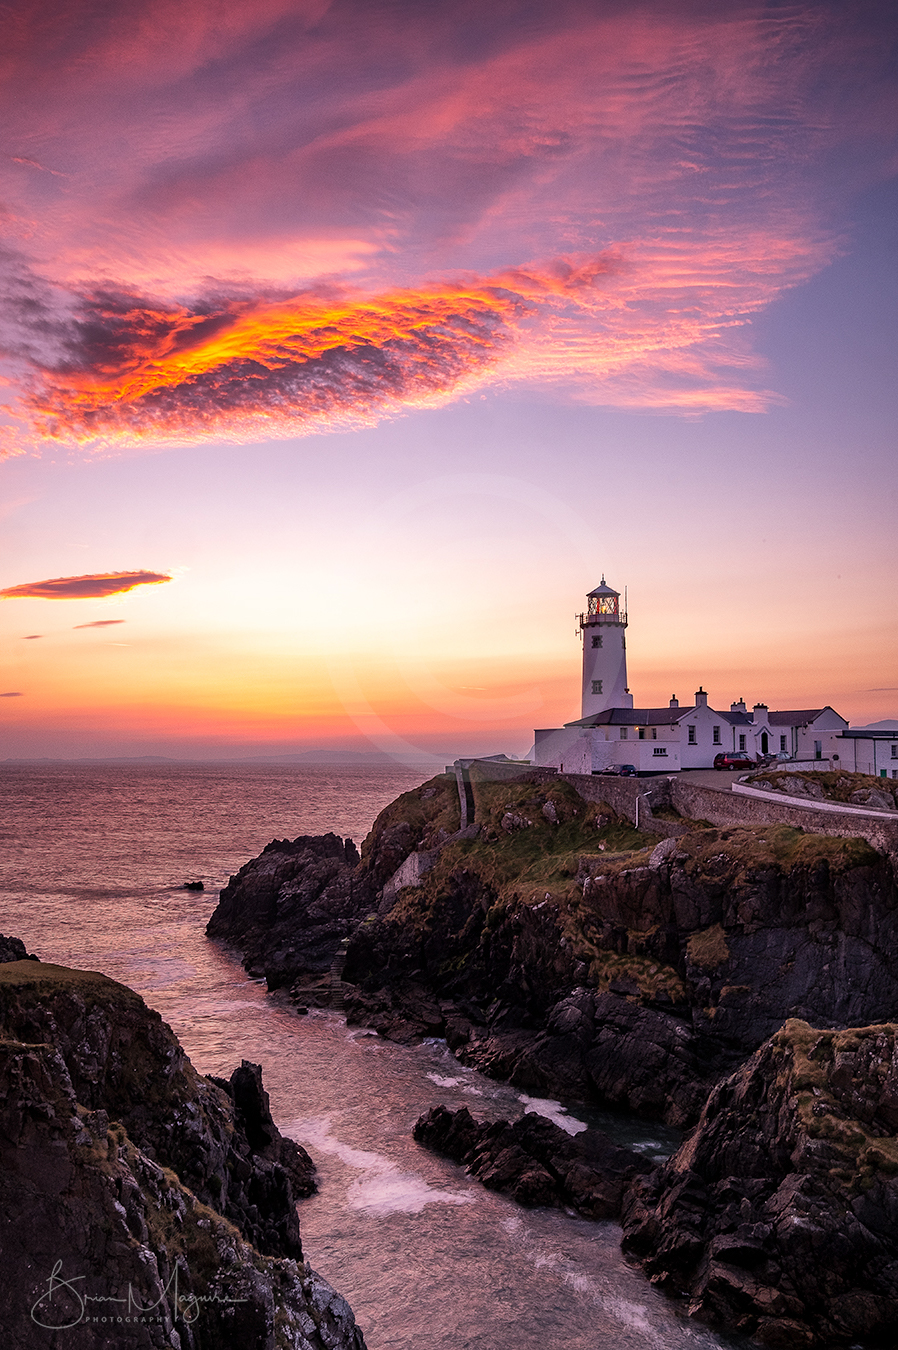 DL0048 - Fanad sunrise - portrait